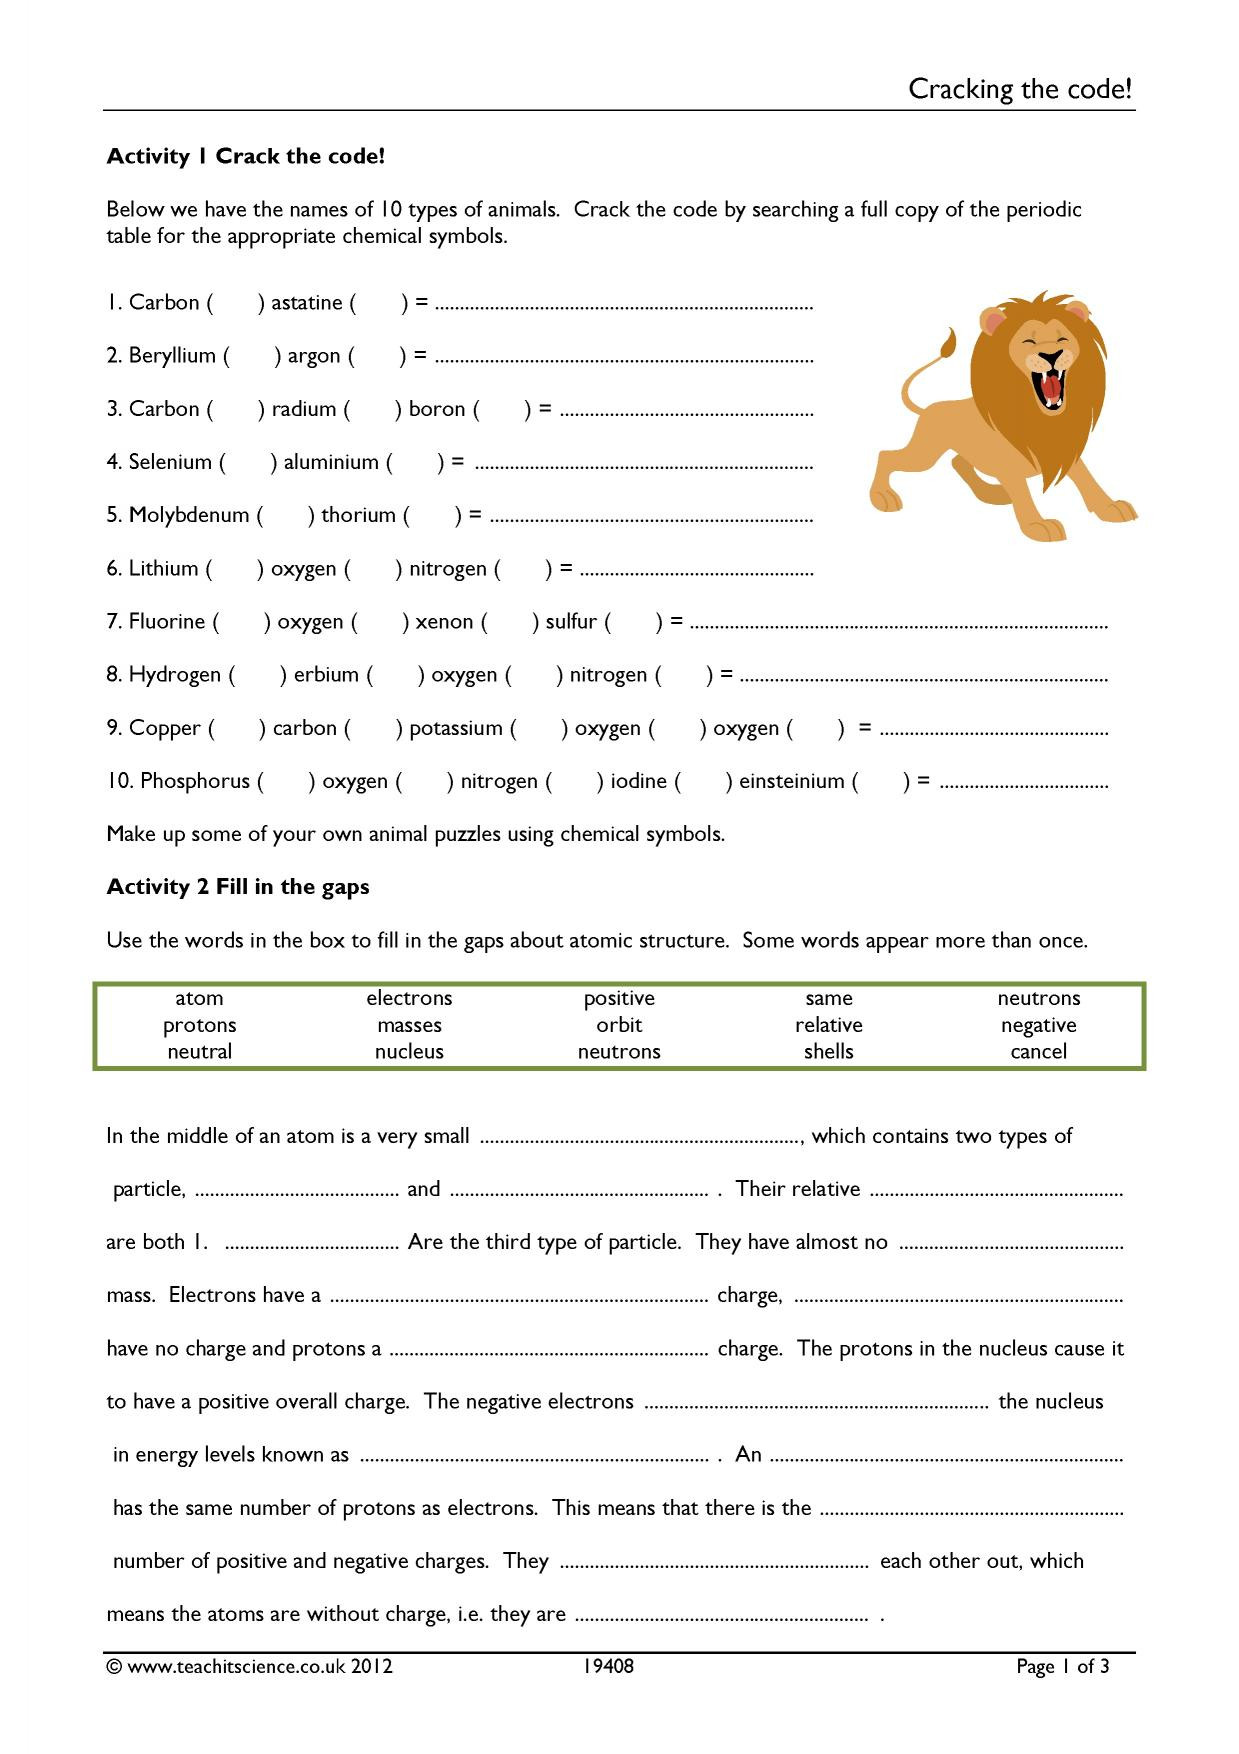 Crack the Code Math Worksheet Cracking the Code